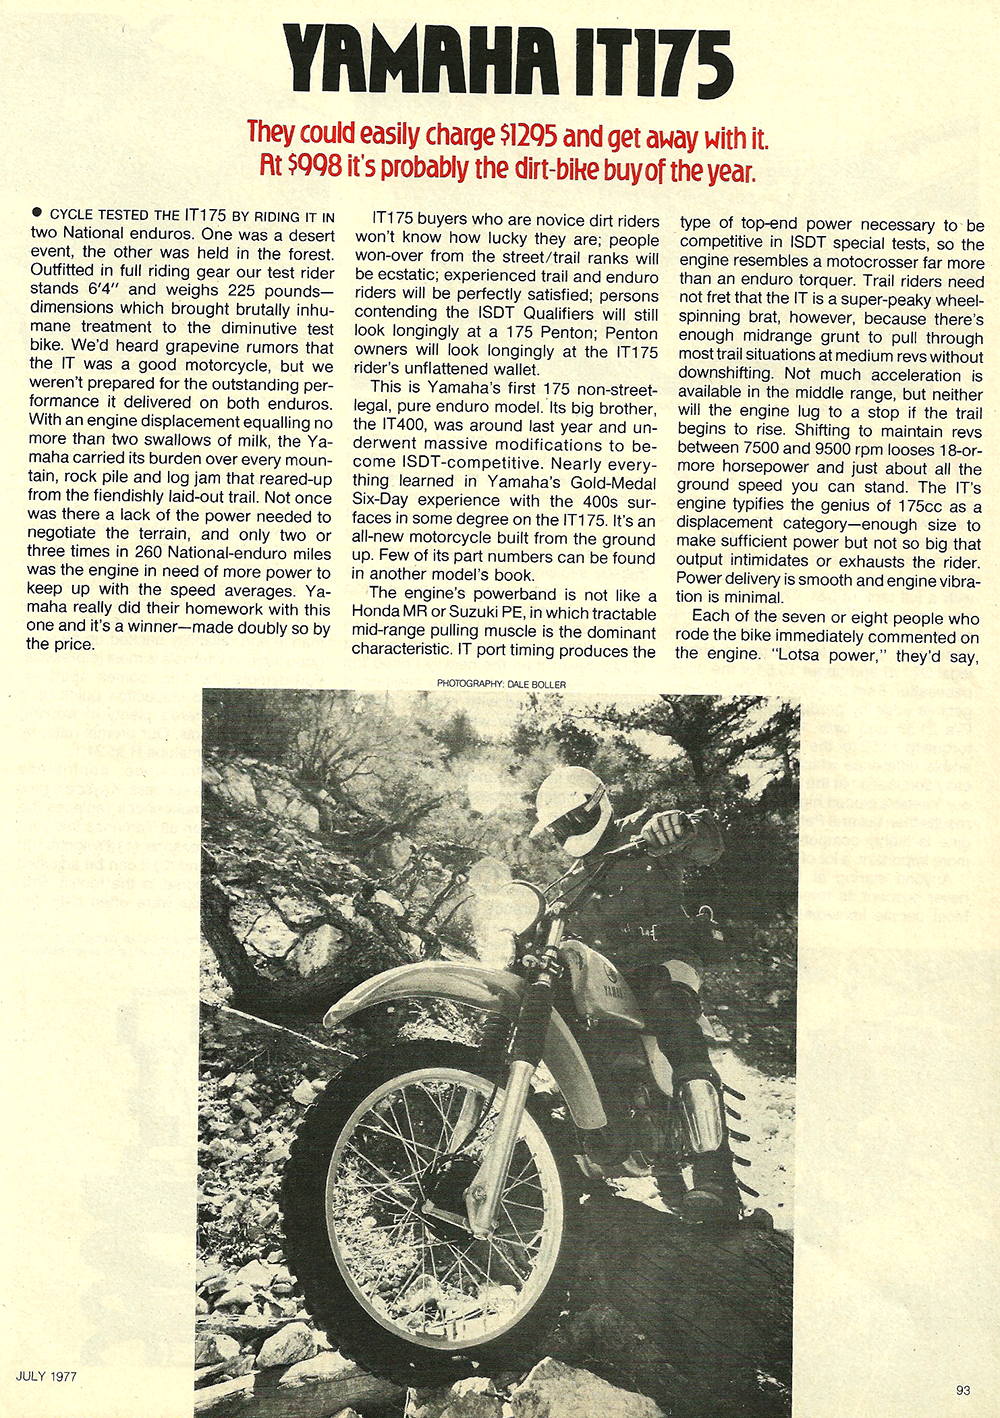 1977 Yamaha IT175 road test 2.jpg